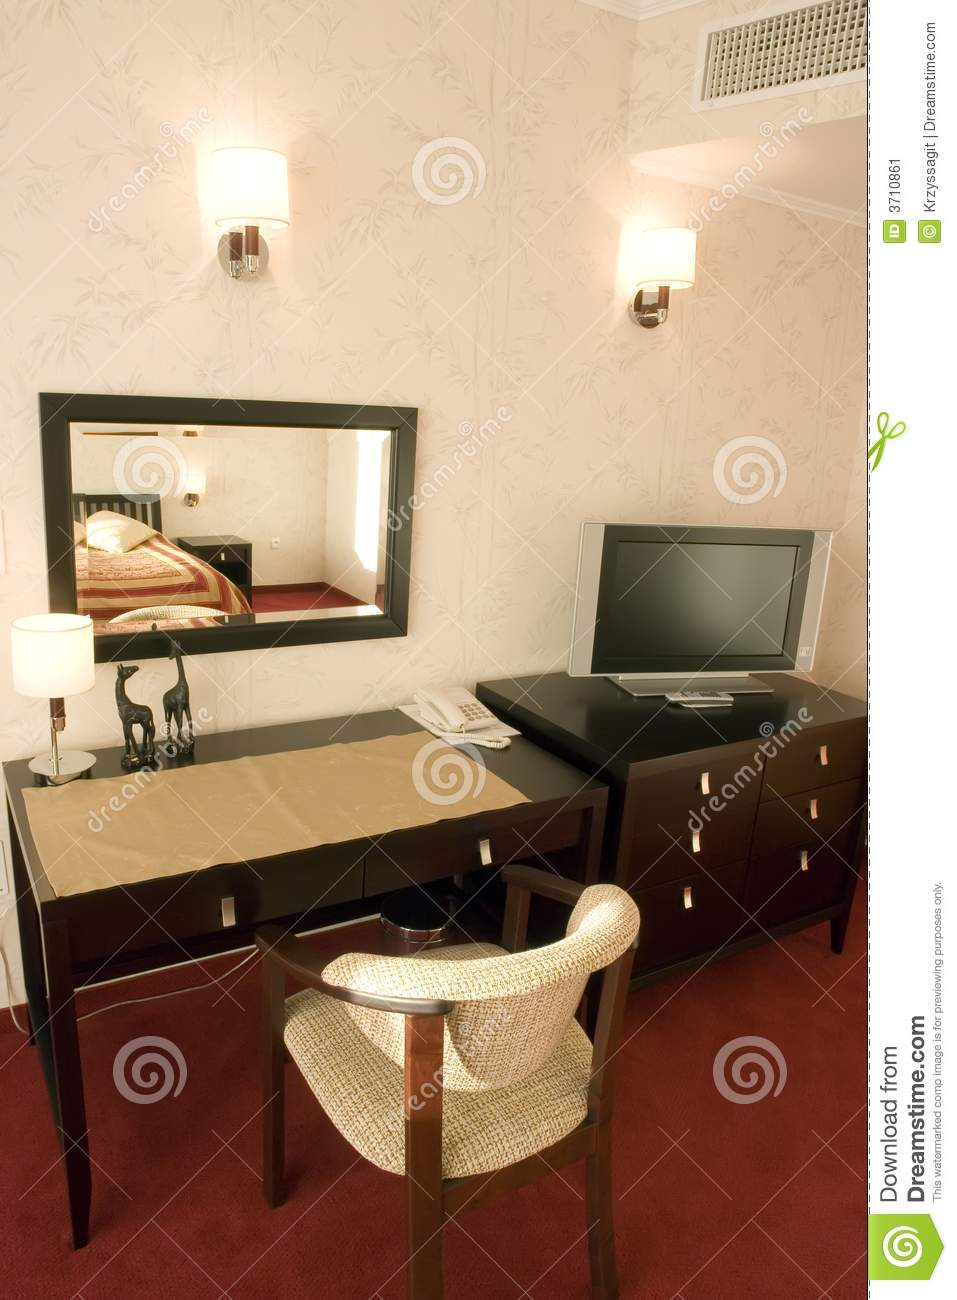 Furniture In Hotel Room Stock Image